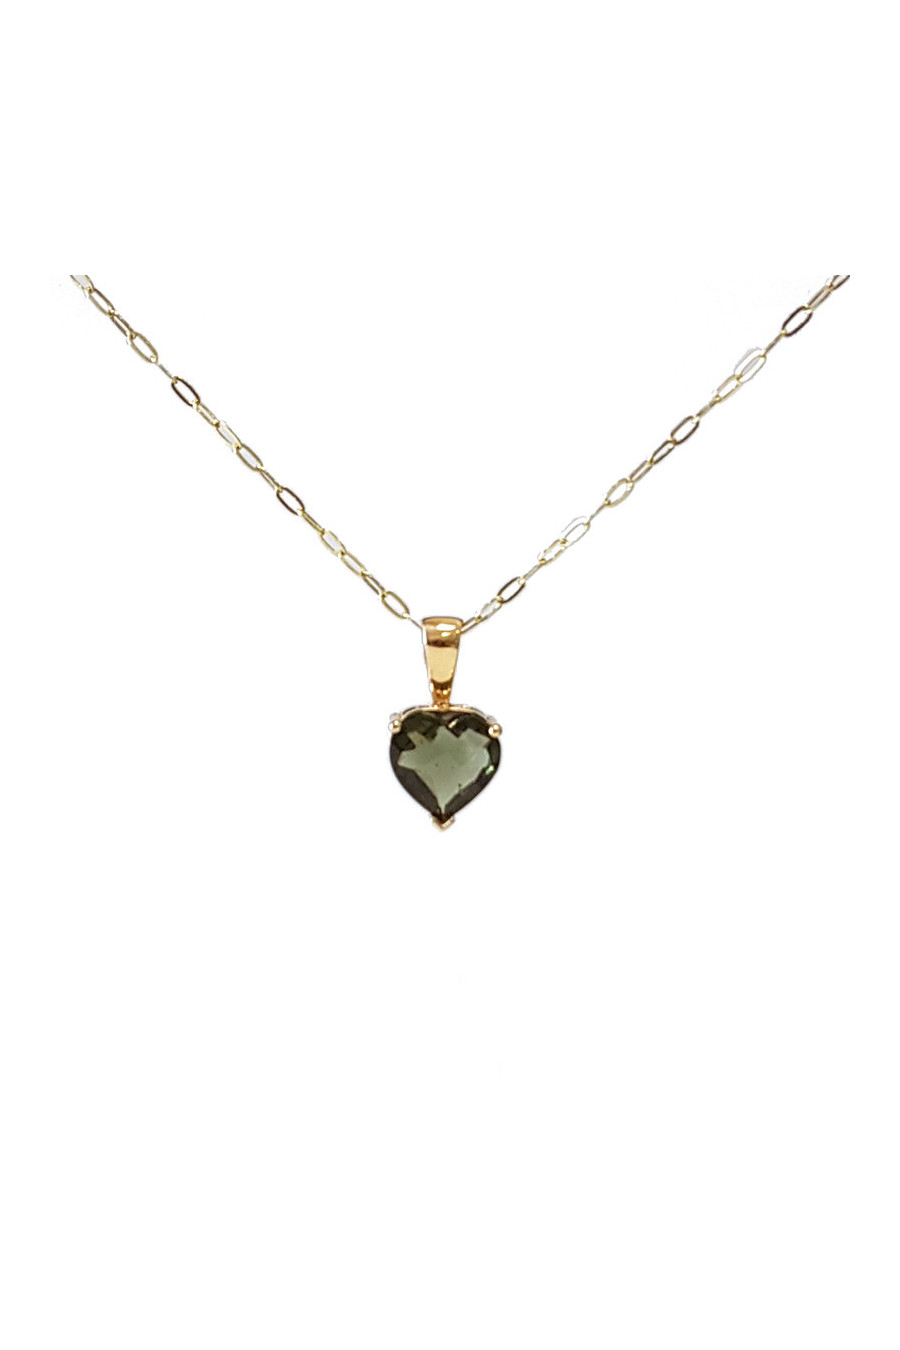 Gold pendant with moldavite